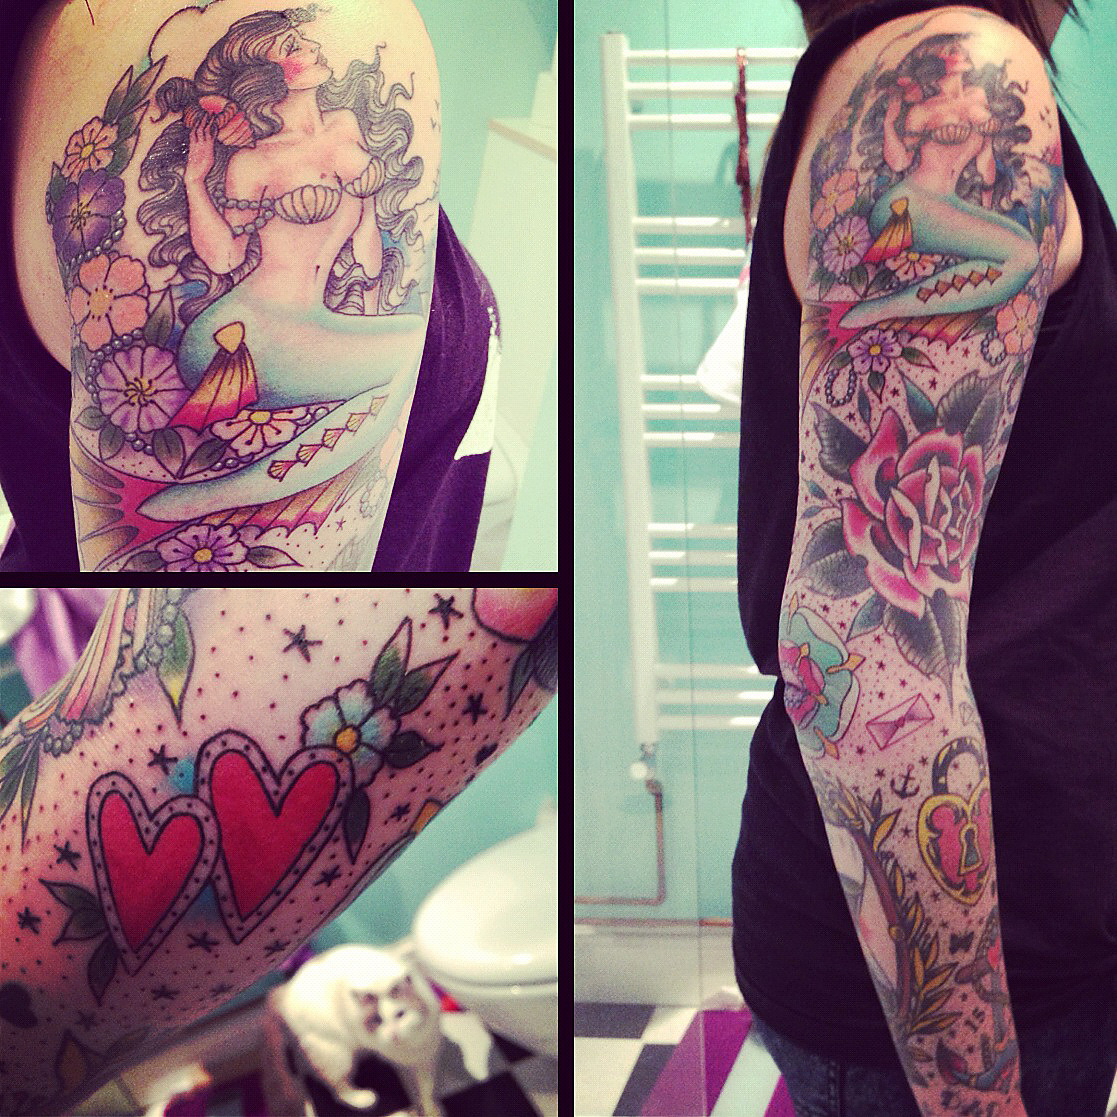 fuckyeahtattoos:  Finally finished my sleeve, a collection of talented artists and a lot of memories. Tracy D, Kings Kross Tattoo Parlour, London | Tutti Serra, Black Garden Tattoo, London | Emiliano, Frith Street Tattoo, London | Kiko Lopes, London